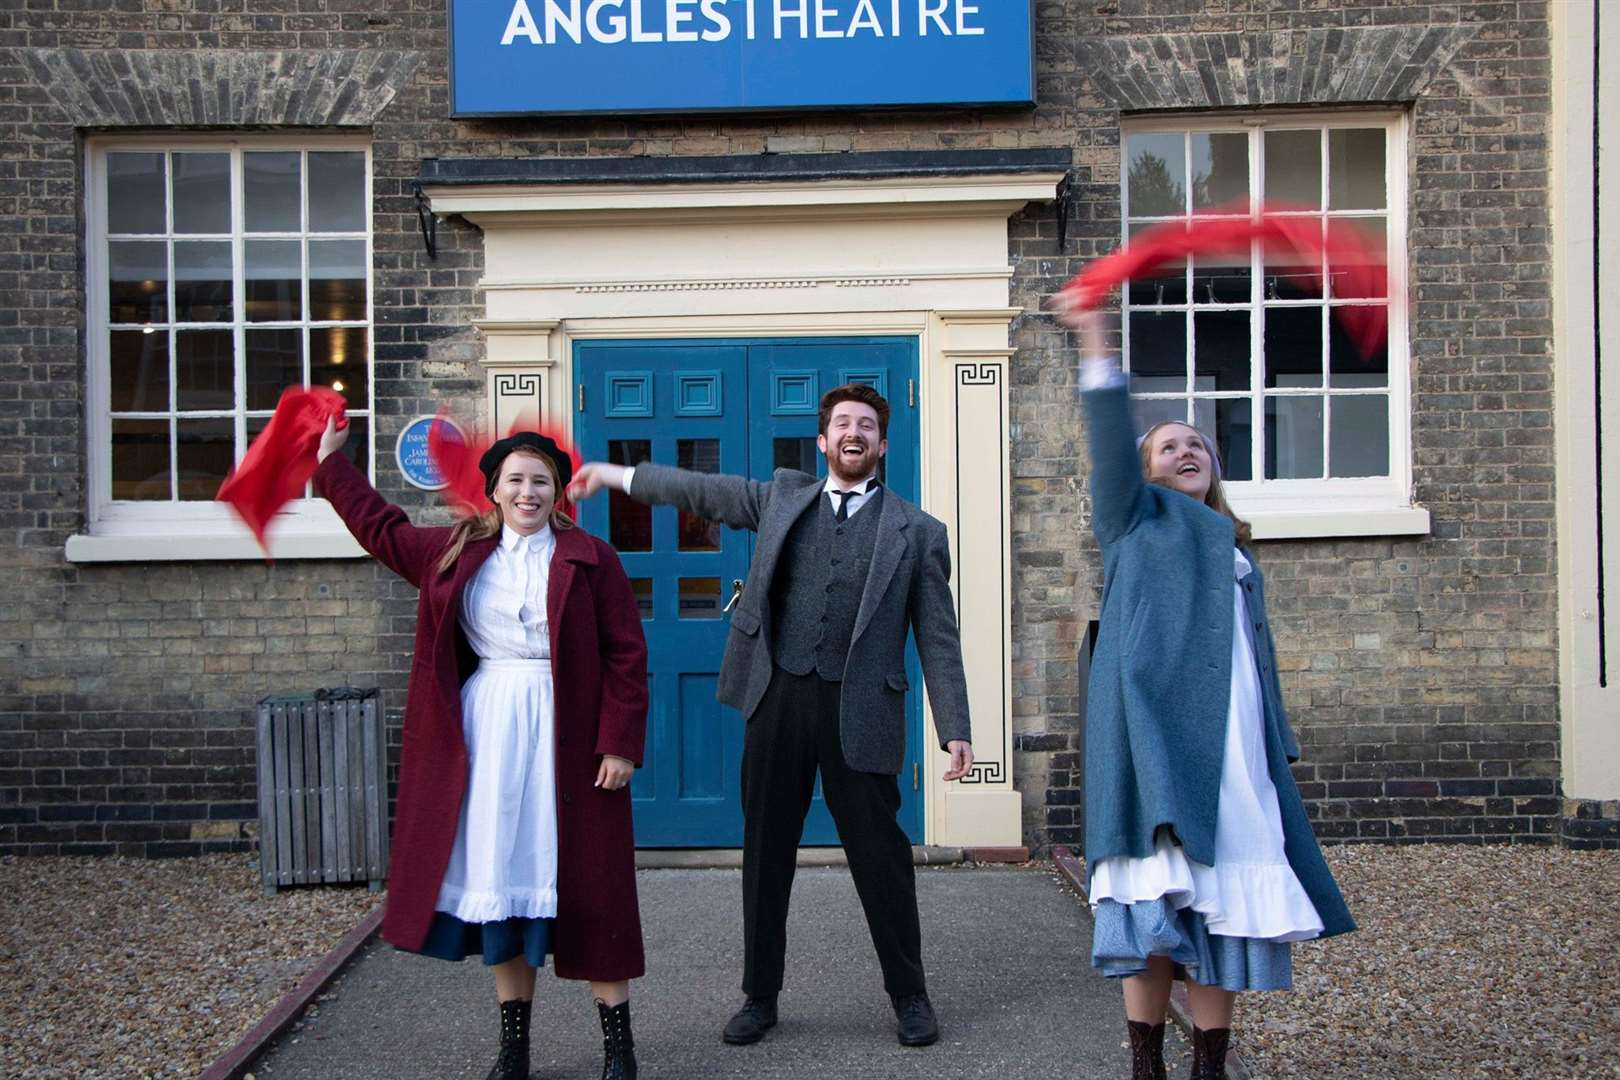 the Railway Children is at The Angles Theatre in Wisbech this week. (16011173)